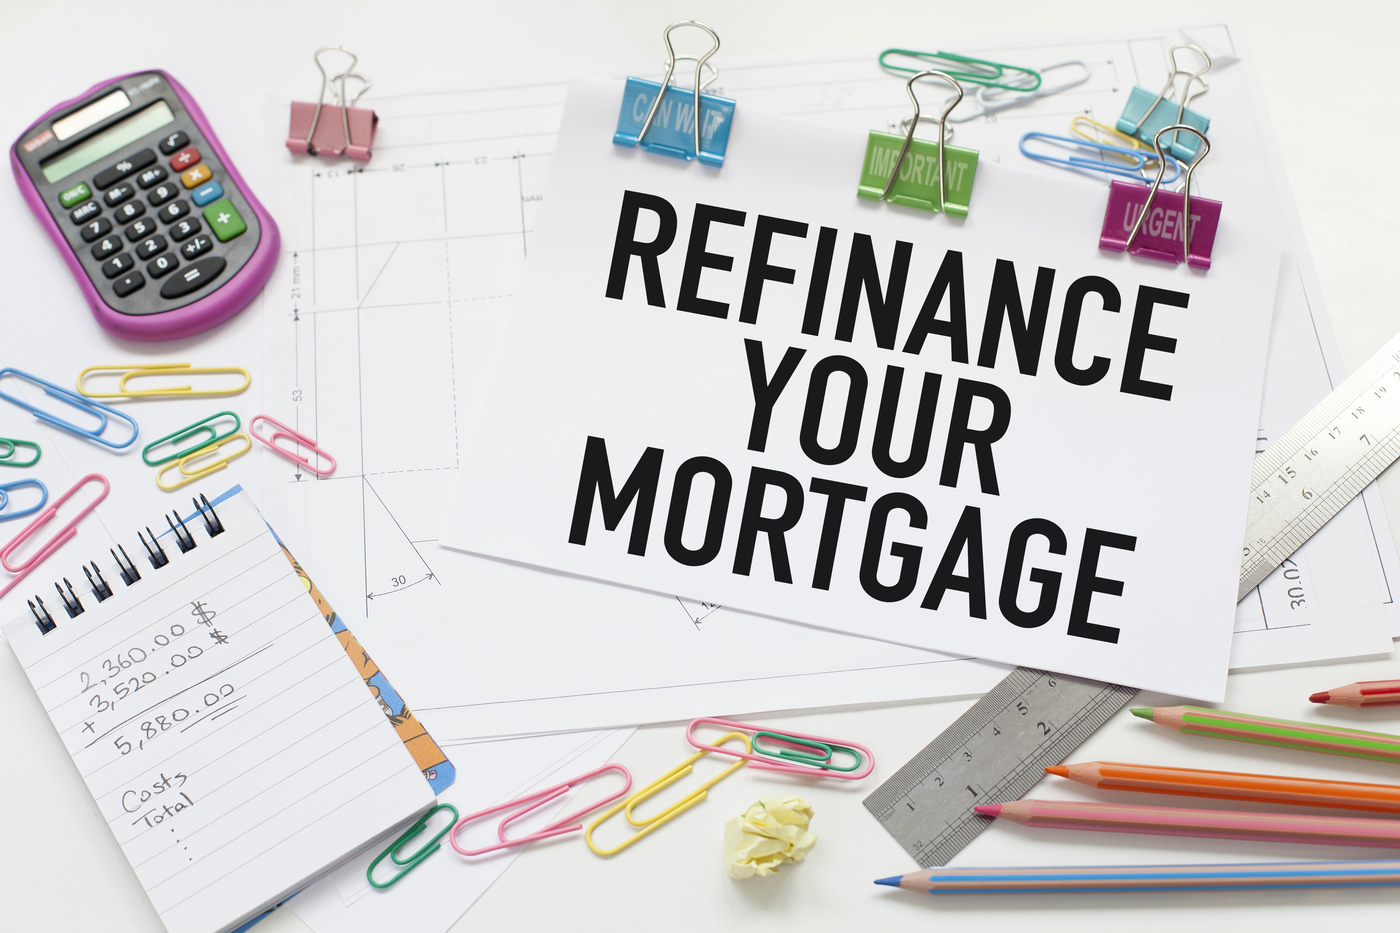 here-how-to-refinance-your-mortgage-with-bank-statement-loan